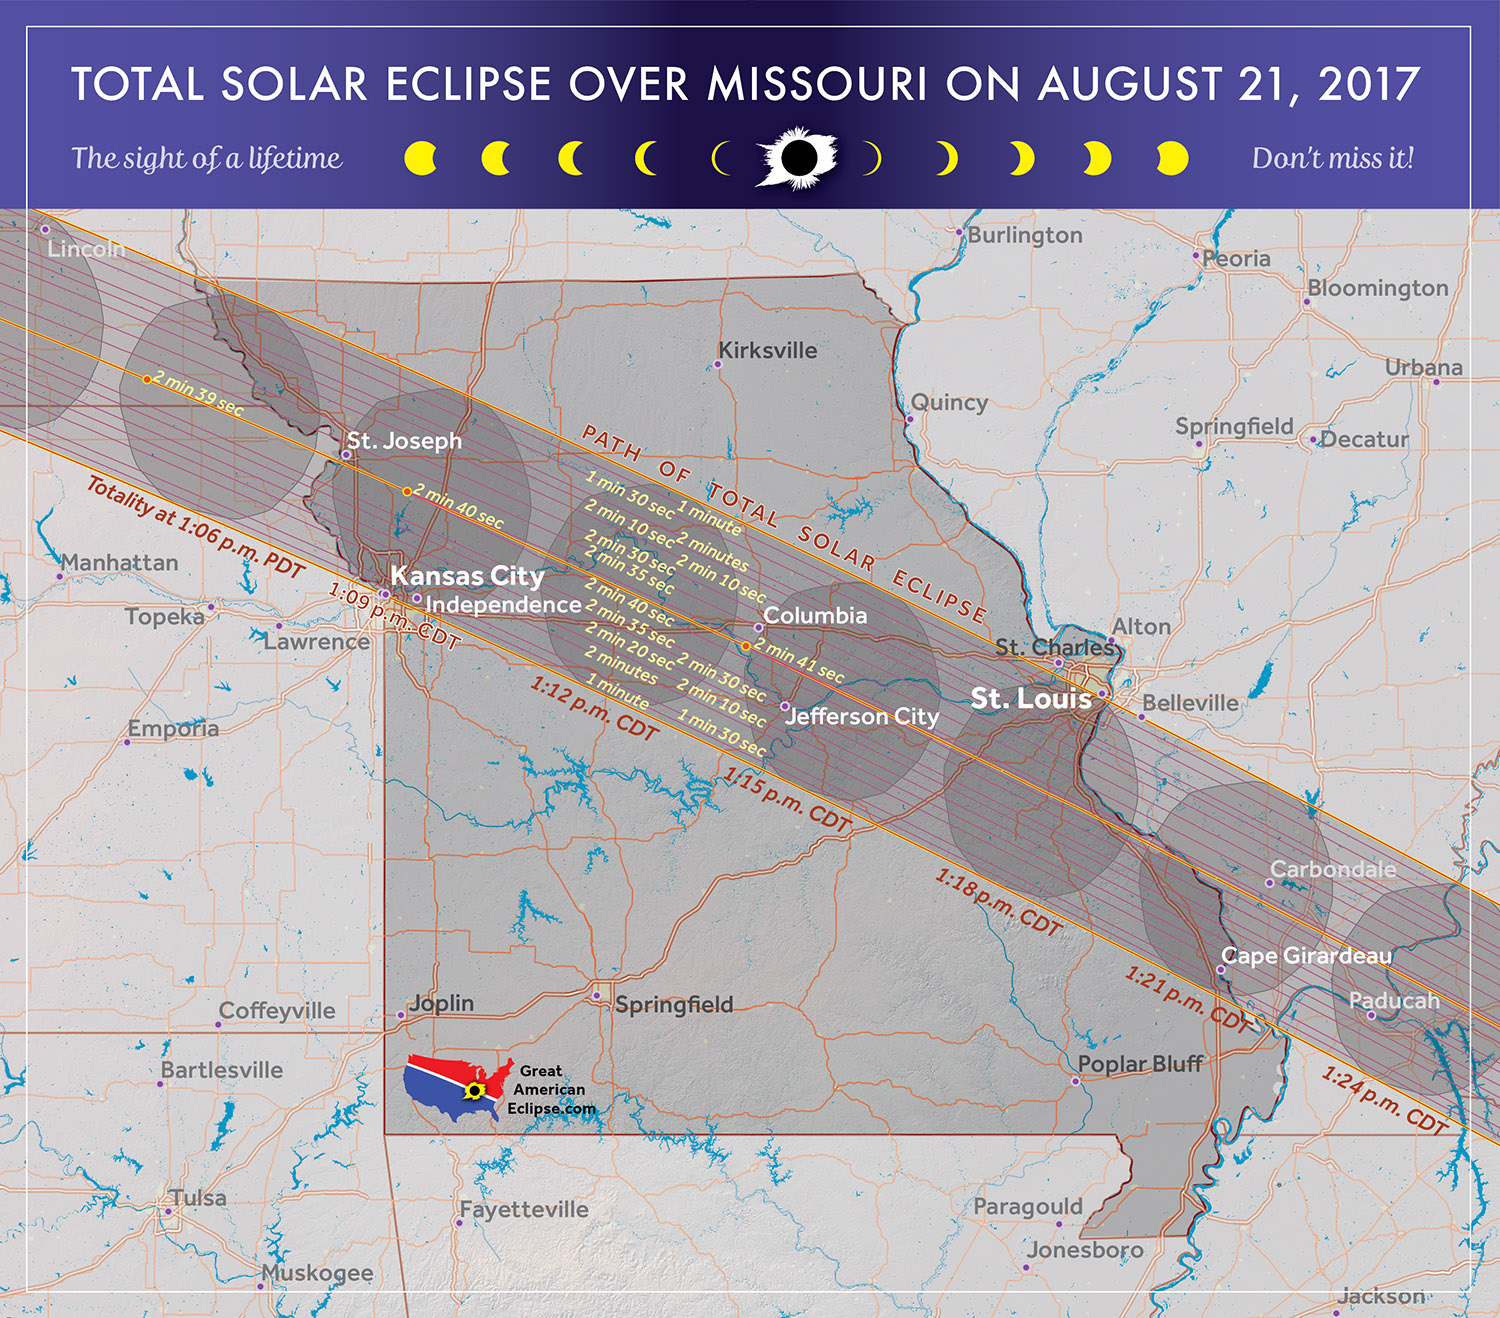 The two major cities of Missouri, Kansas City and St. Louis, greet the great American Eclipse, although citizens in these cities are encouraged to drive 30 miles towards the center of eclipse to enjoy a long eclipse of 2 minutes and 40 seconds.